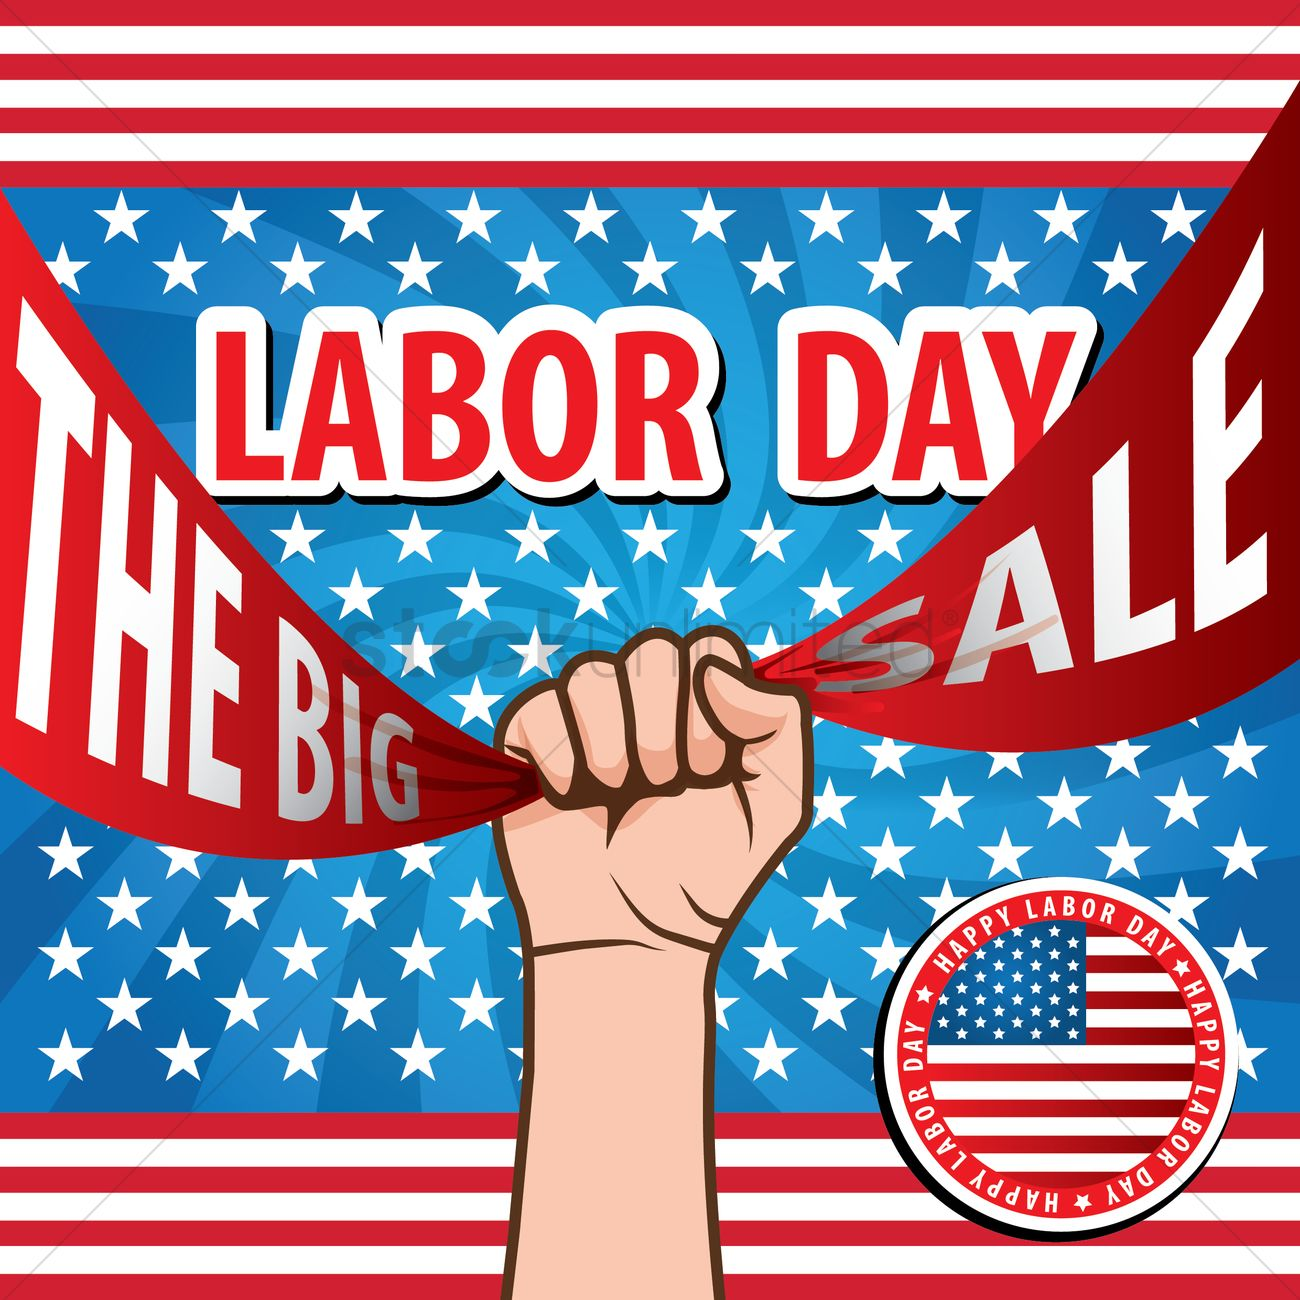 Labor Day Sale Design Vector Image 1557677 Stockunlimited